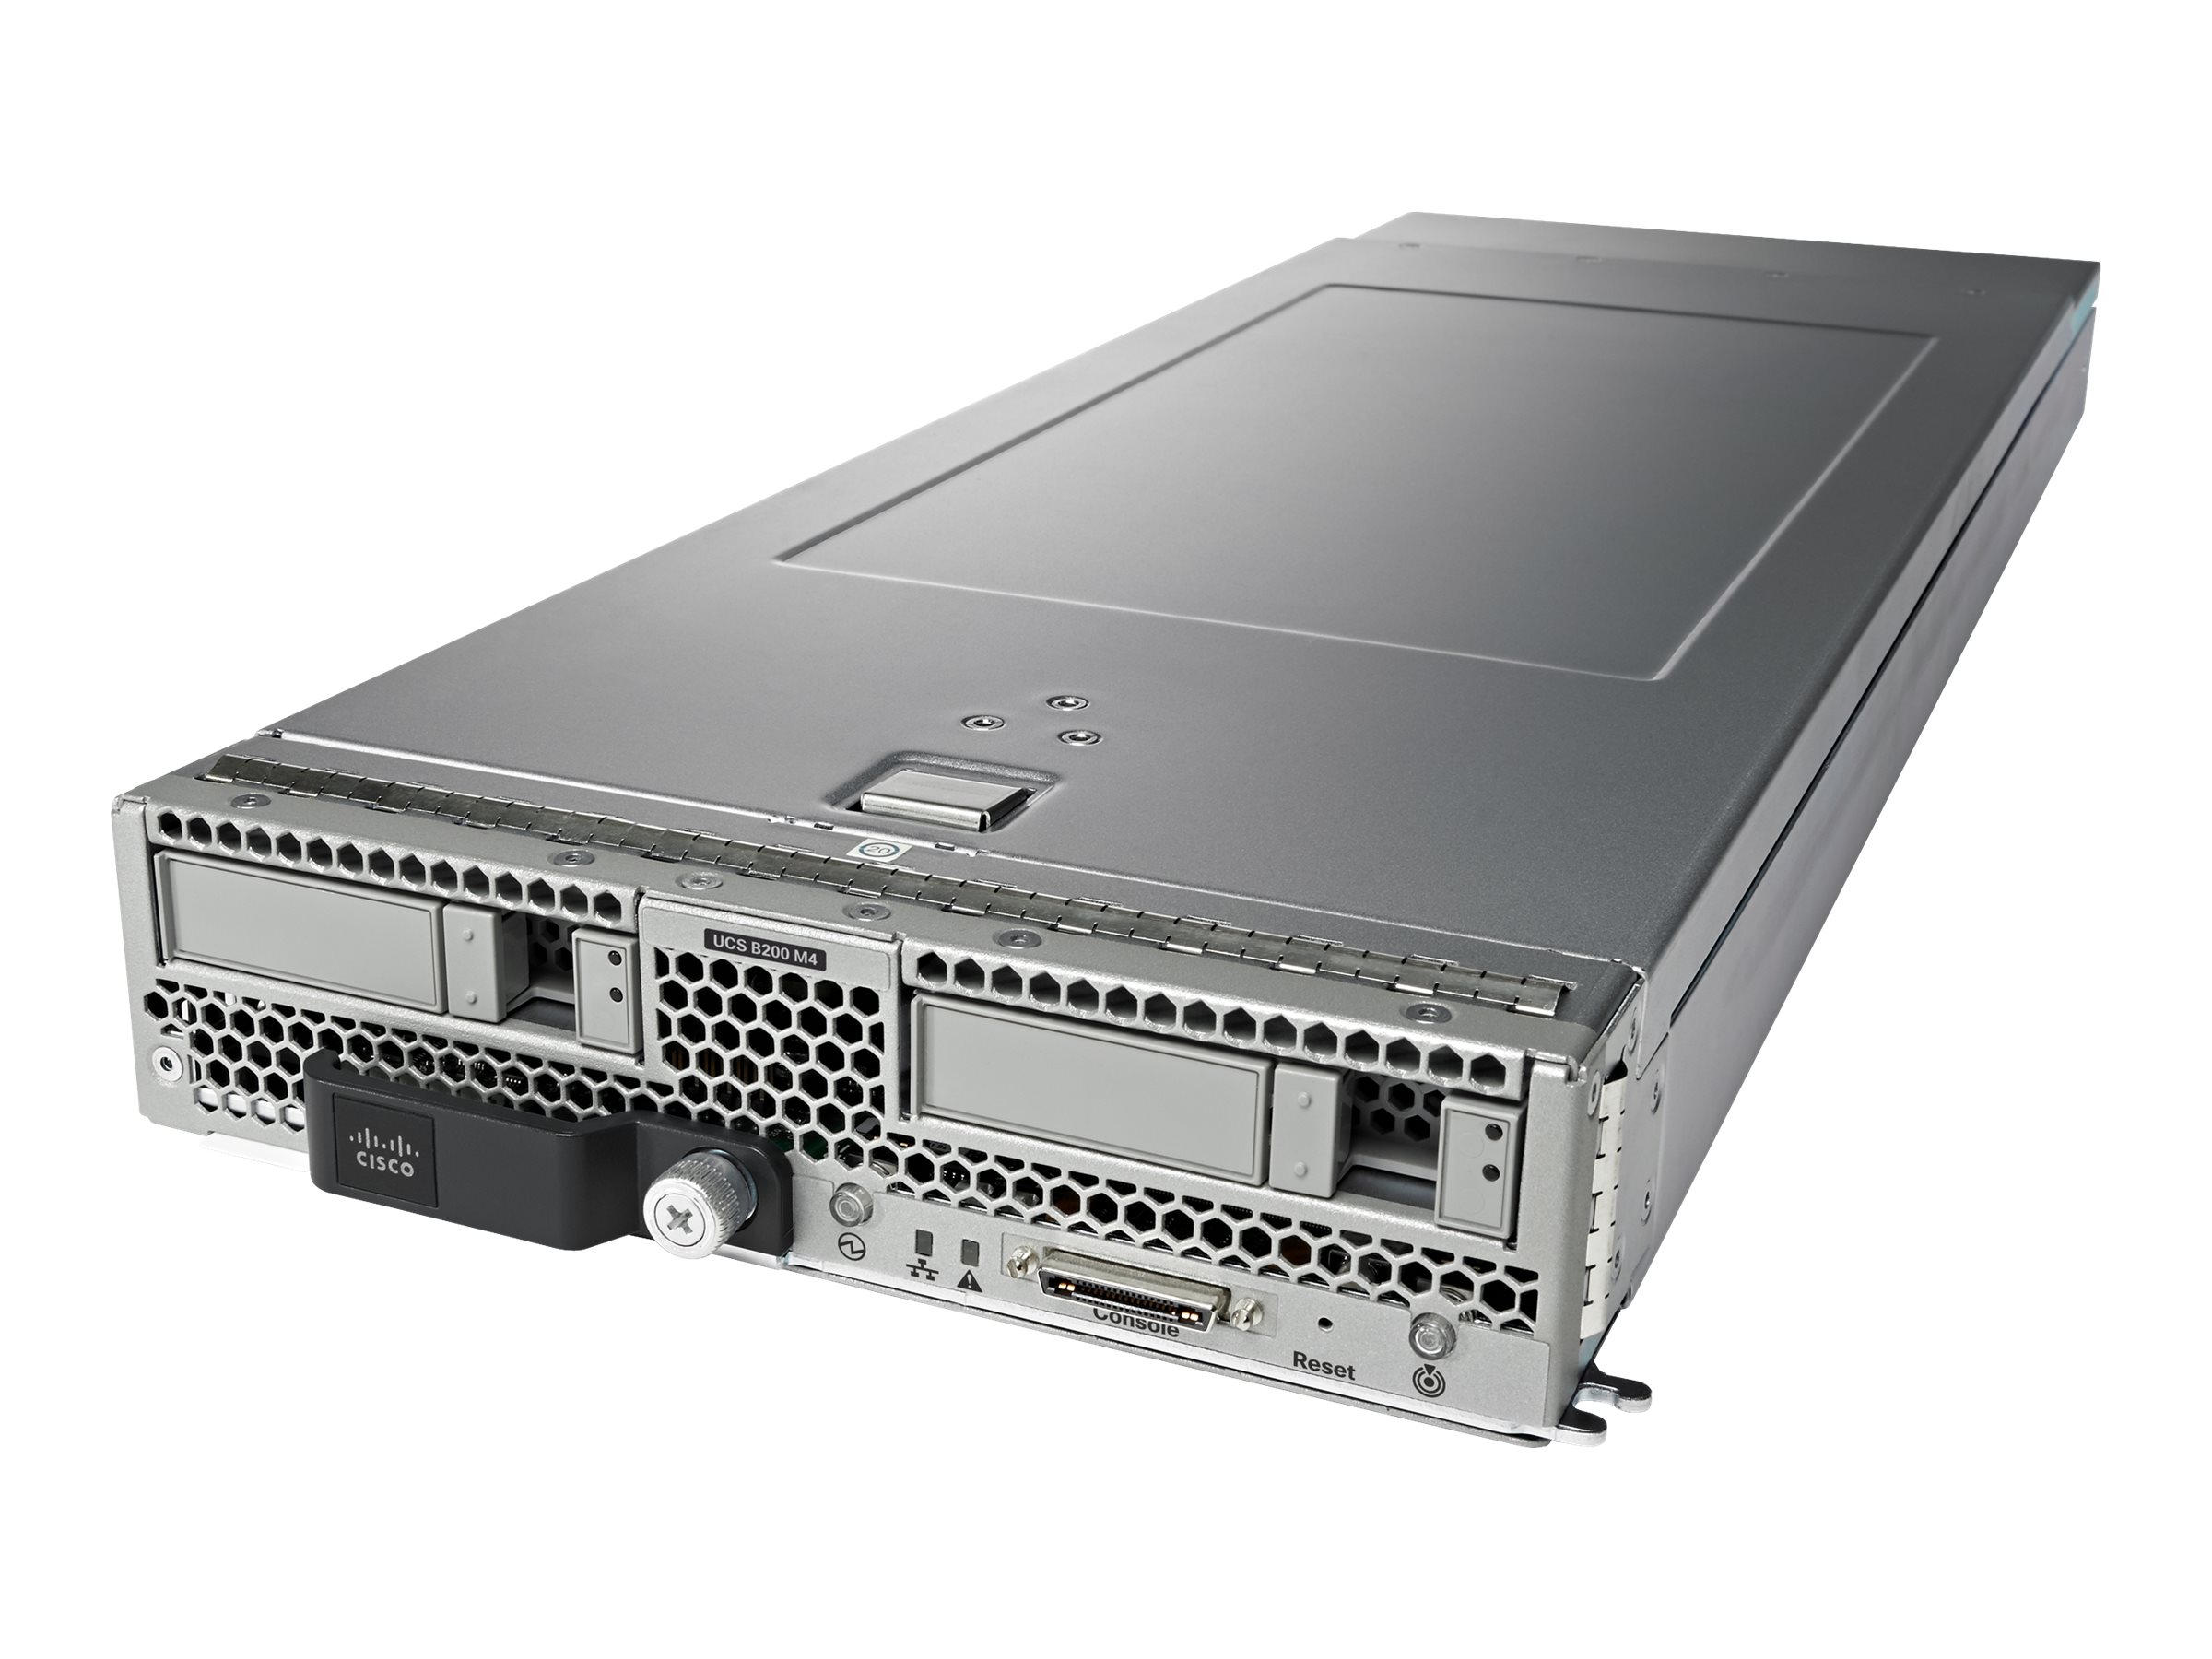 Cisco Not Sold Standalone B200 M4 (2x)Xeon E5-2690 v4